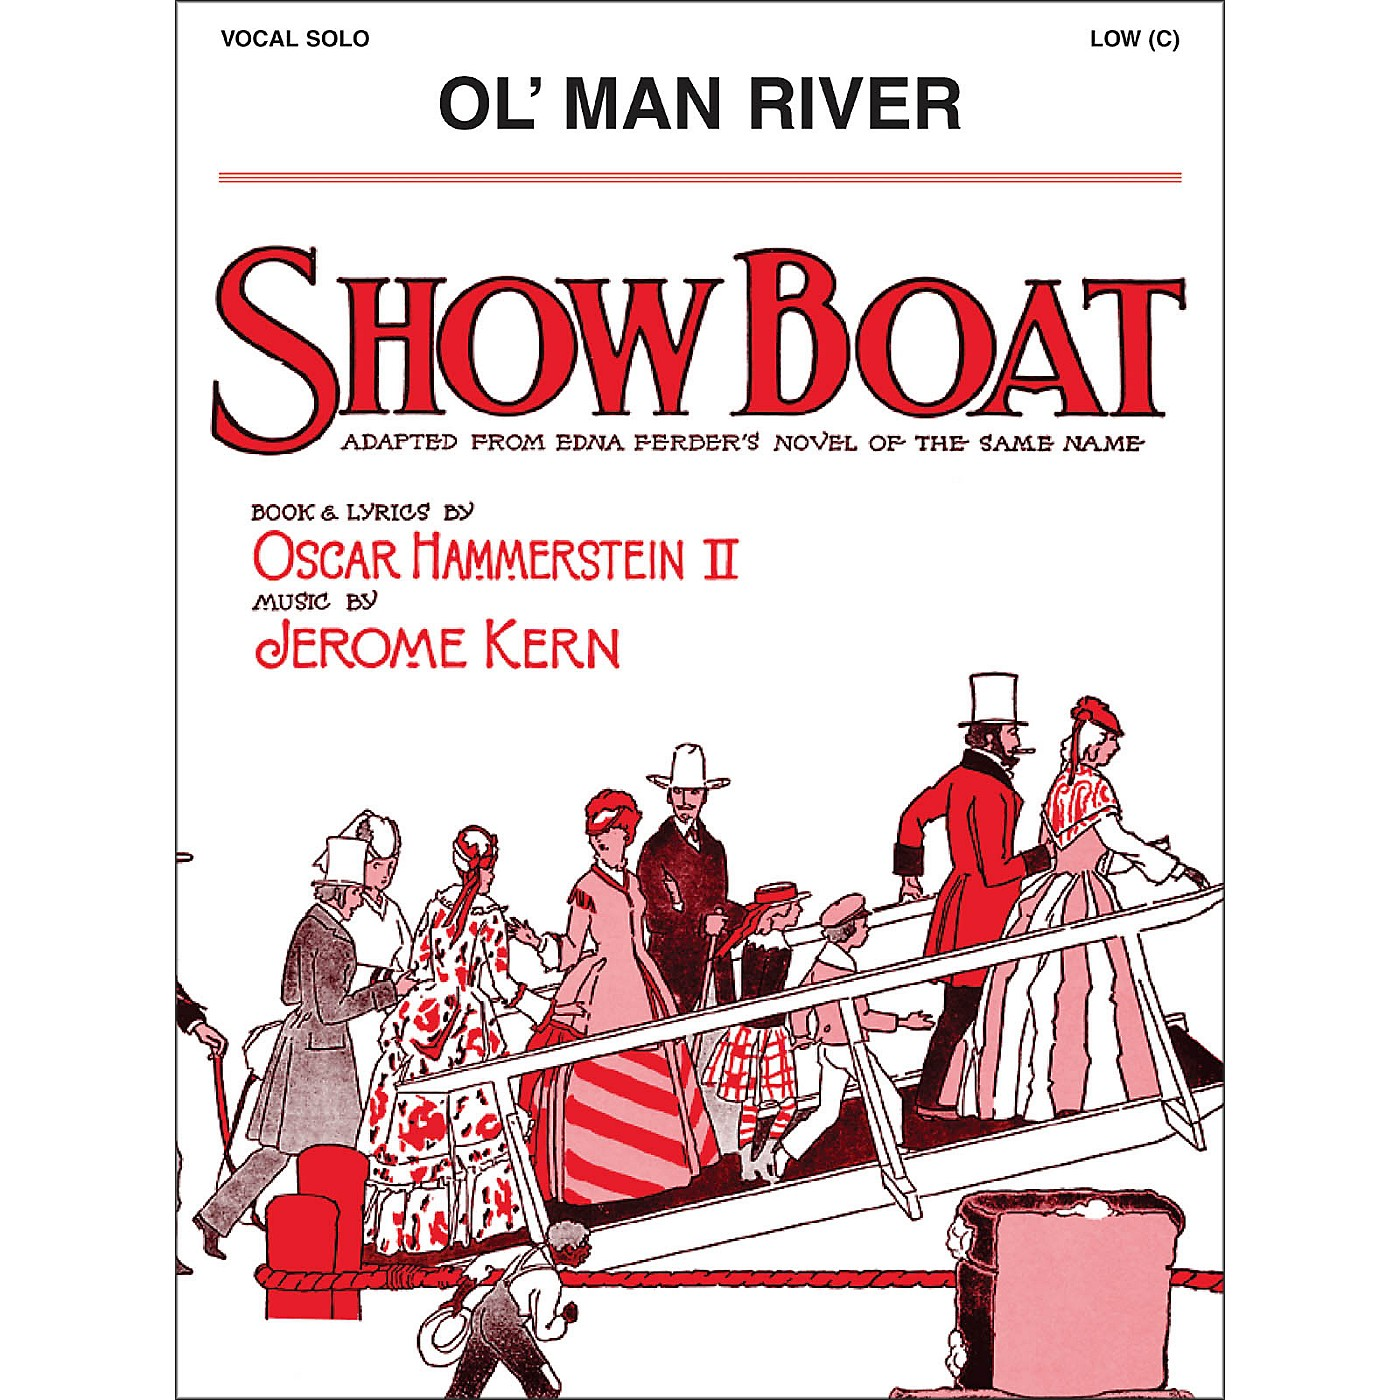 Hal Leonard Ol' Man River Low C From Show Boat Vocal Solo thumbnail